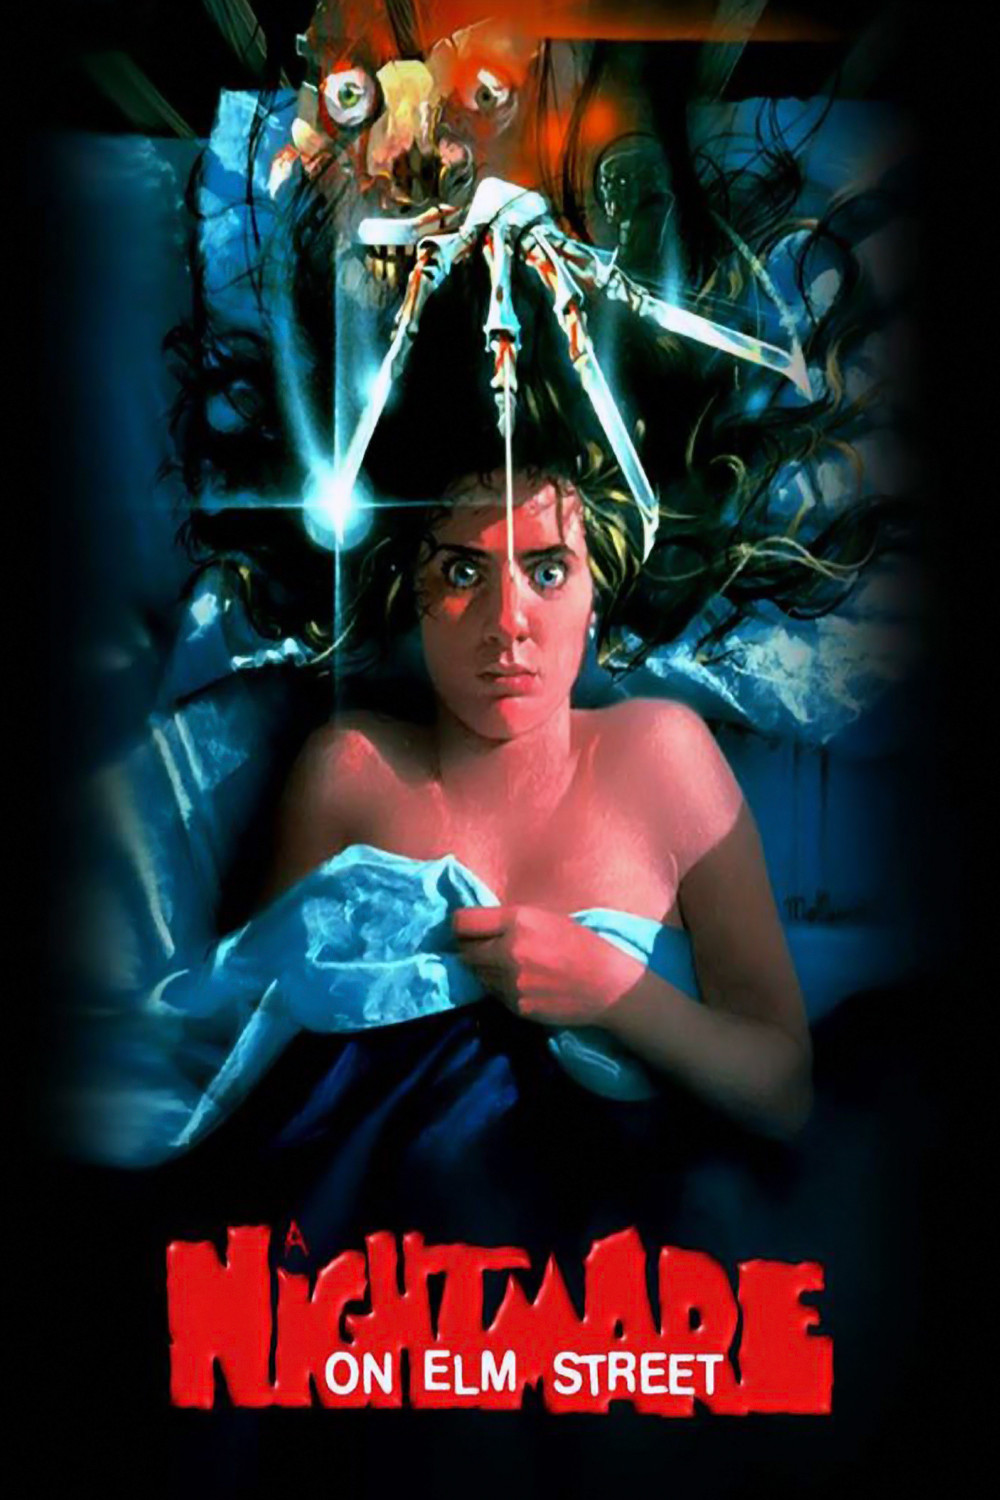 25 THINGS YOU NEVER KNEW ABOUT 'A NIGHTMARE ON ELM STREET'